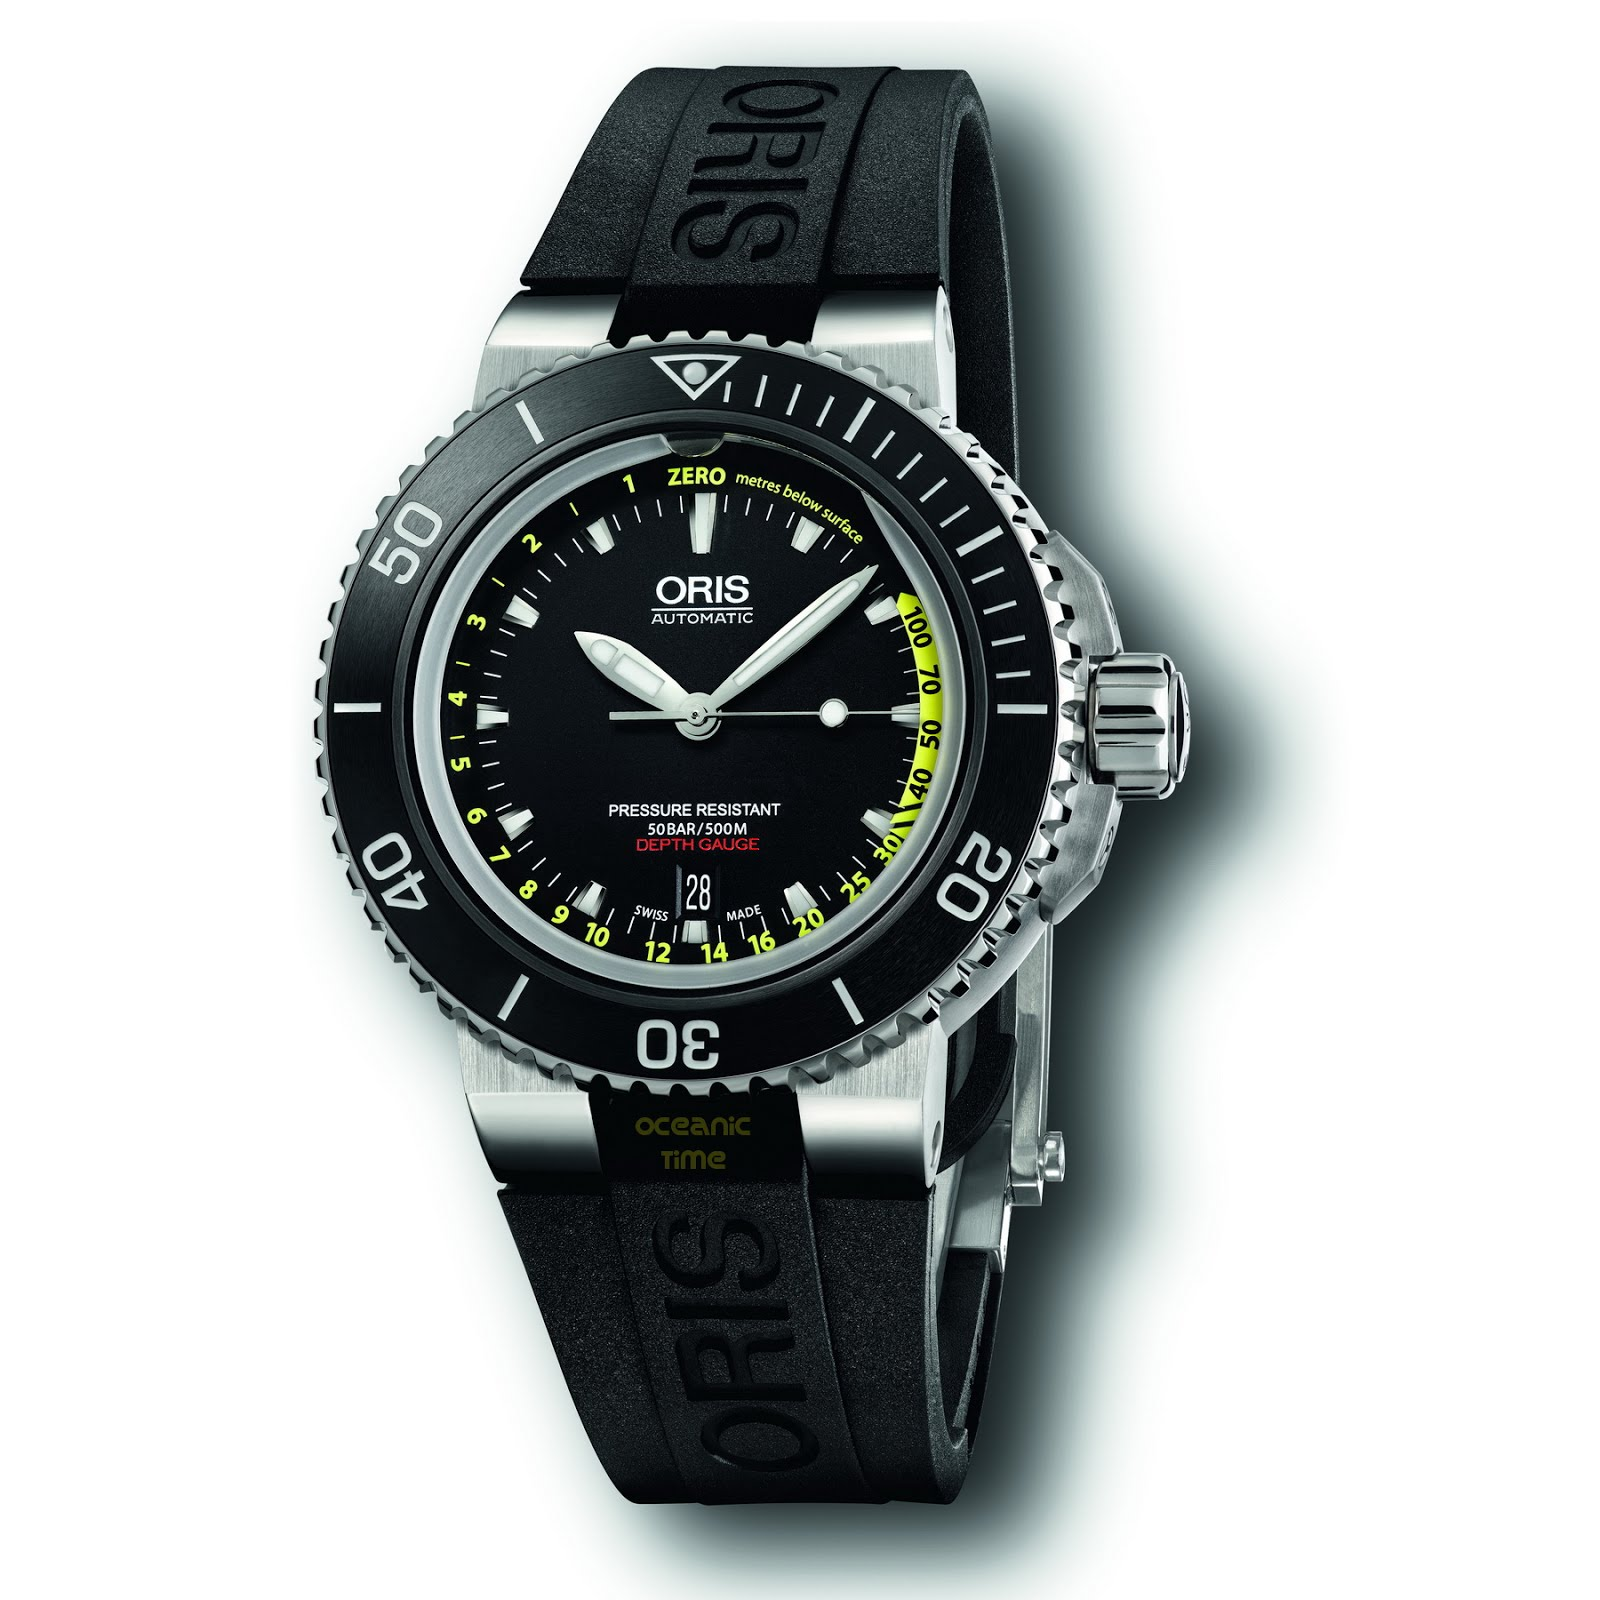 Oceanictime oris aquis depth gauge for Oris watches